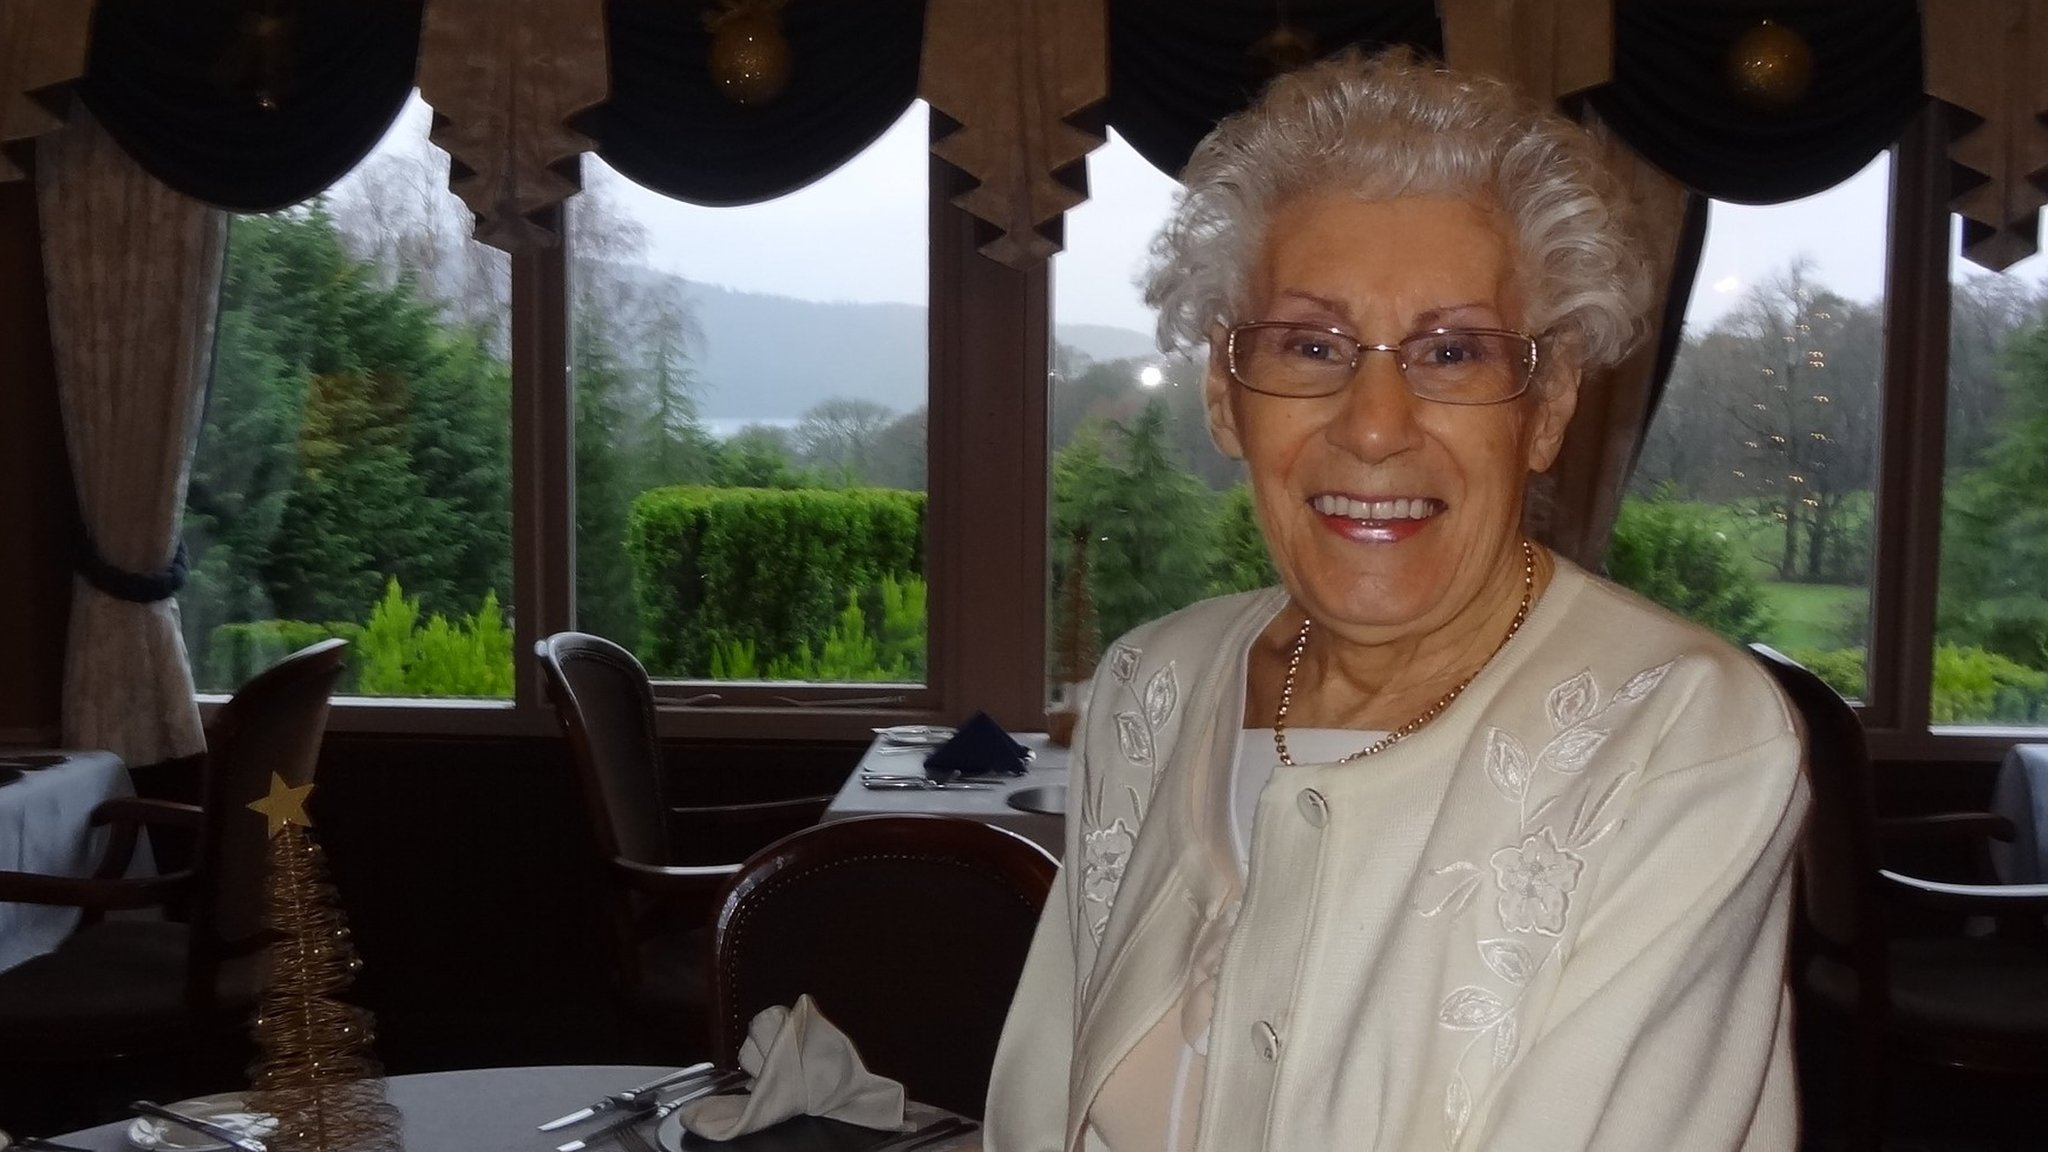 County Durham pensioner pens 'popped my clogs' death notice